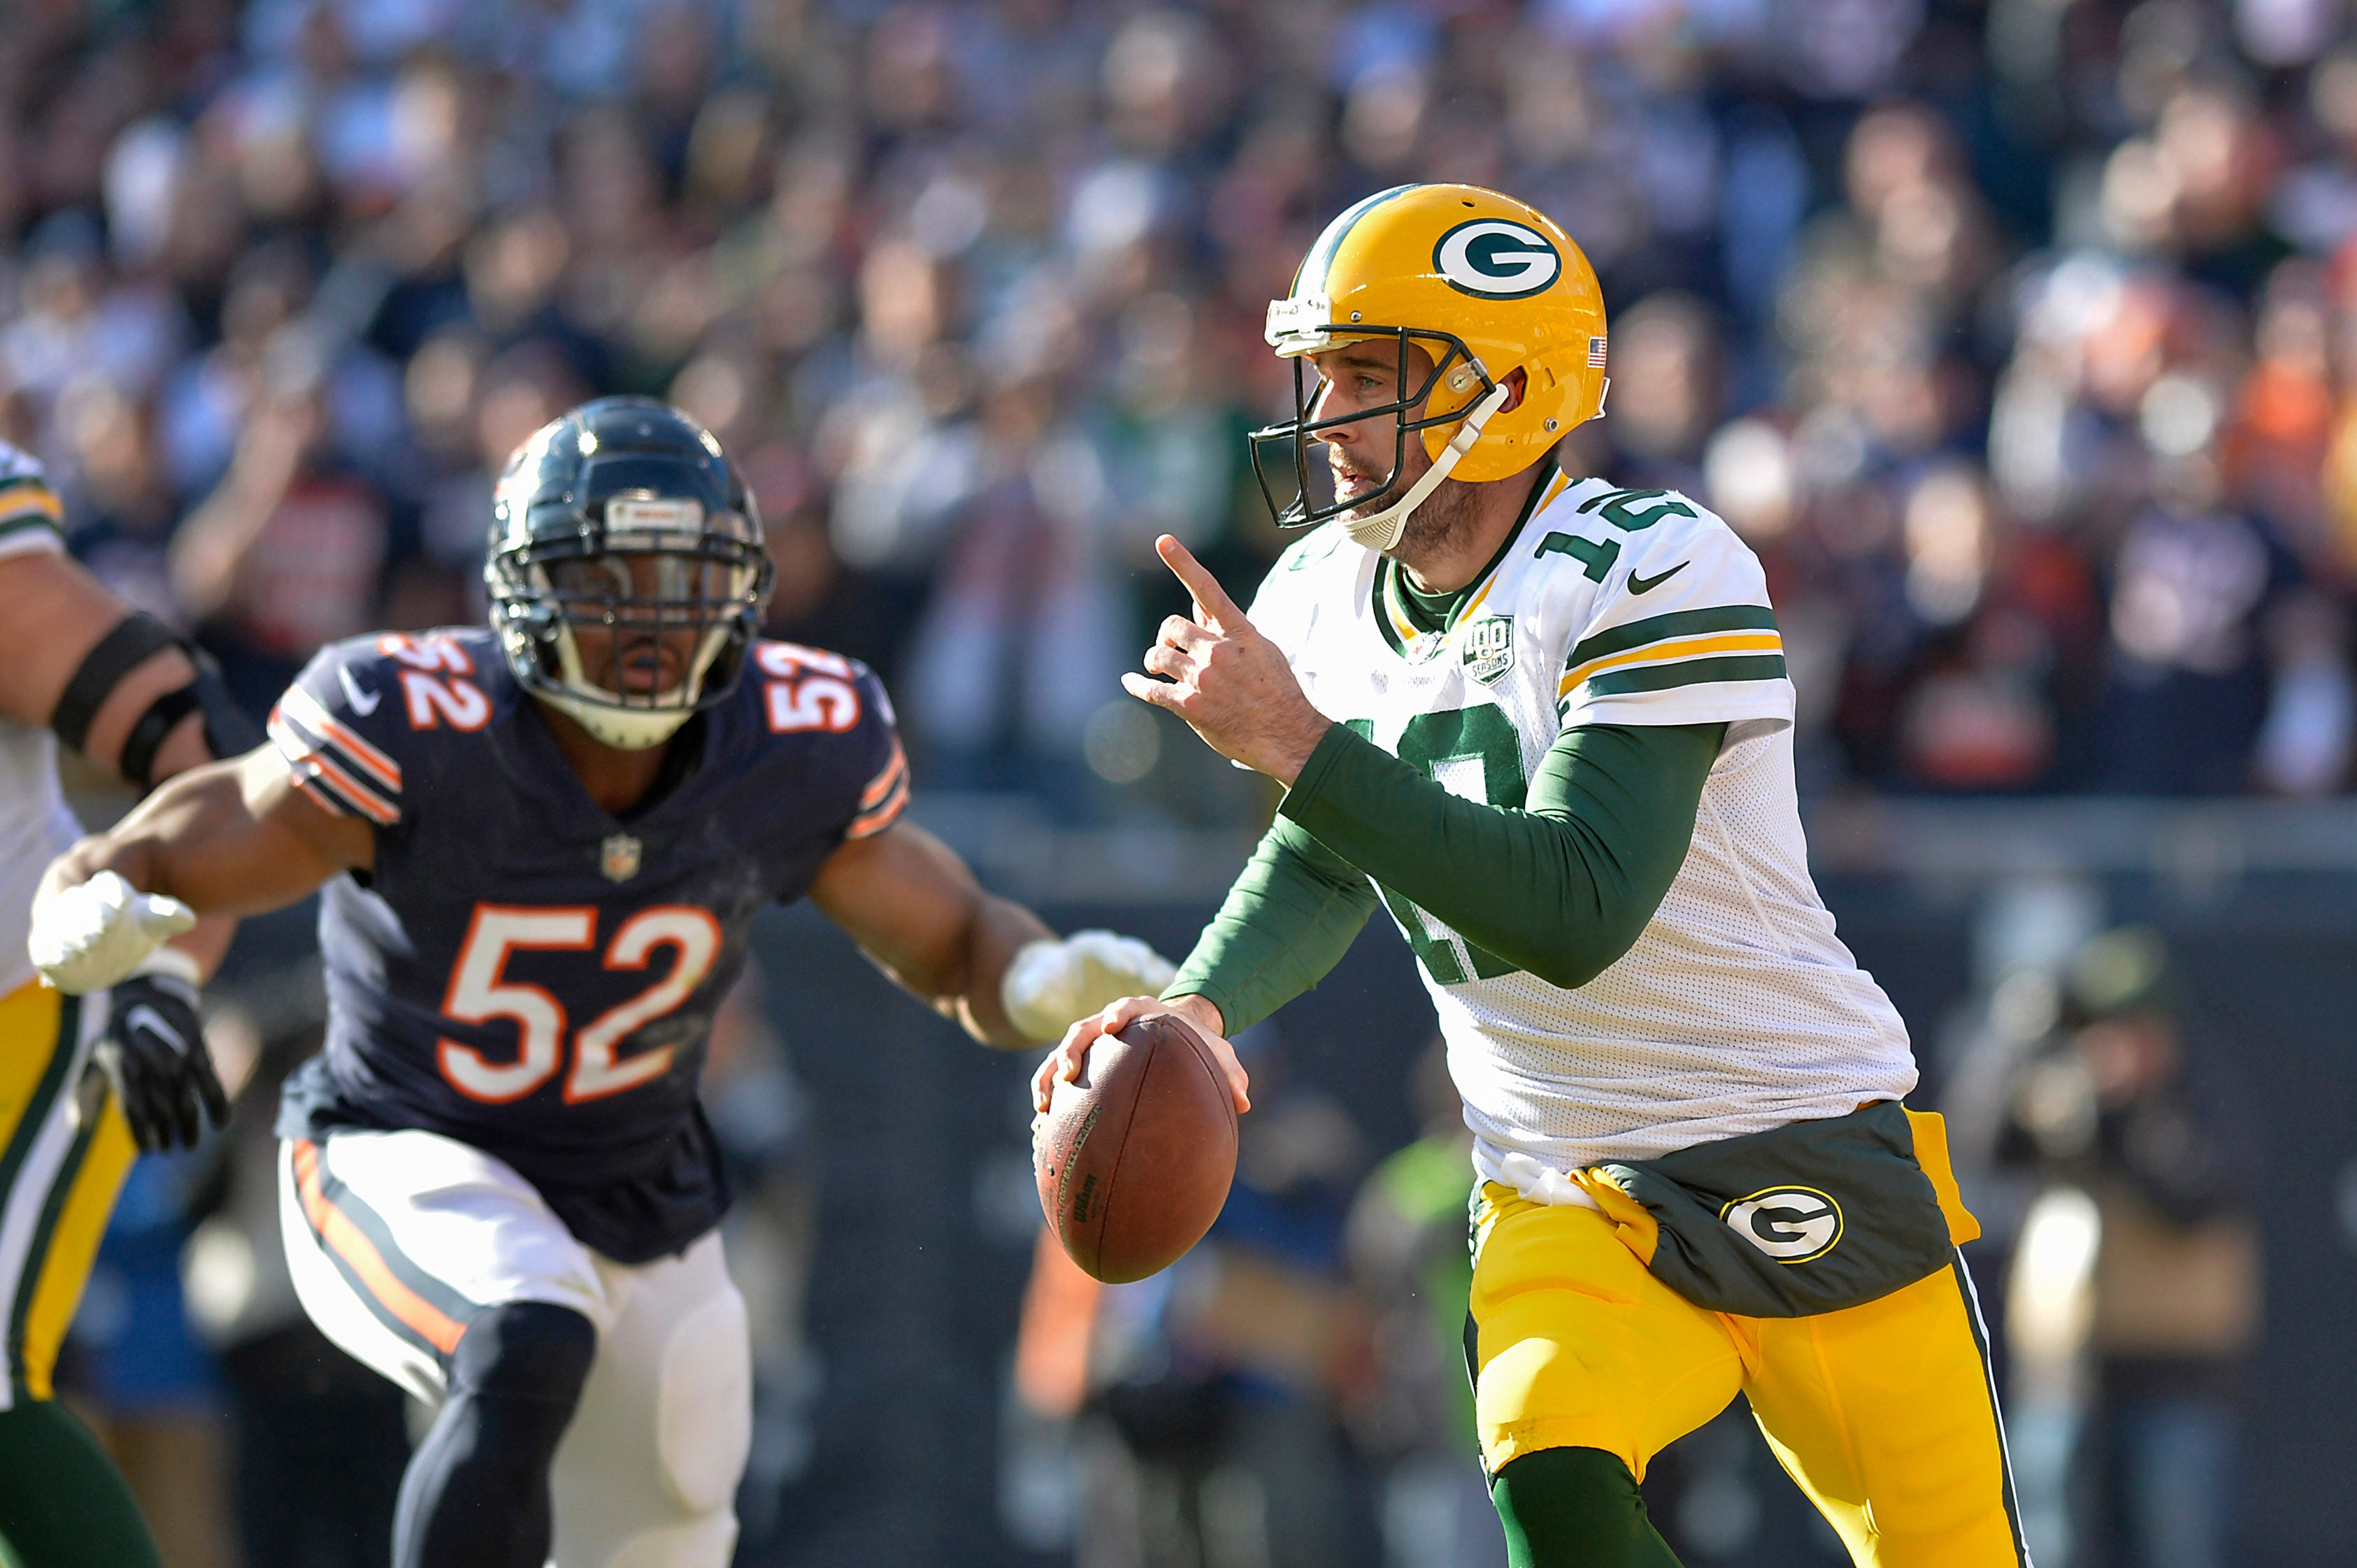 Green Bay Packers at Chicago Bears to open 2019 schedule d913fc1de